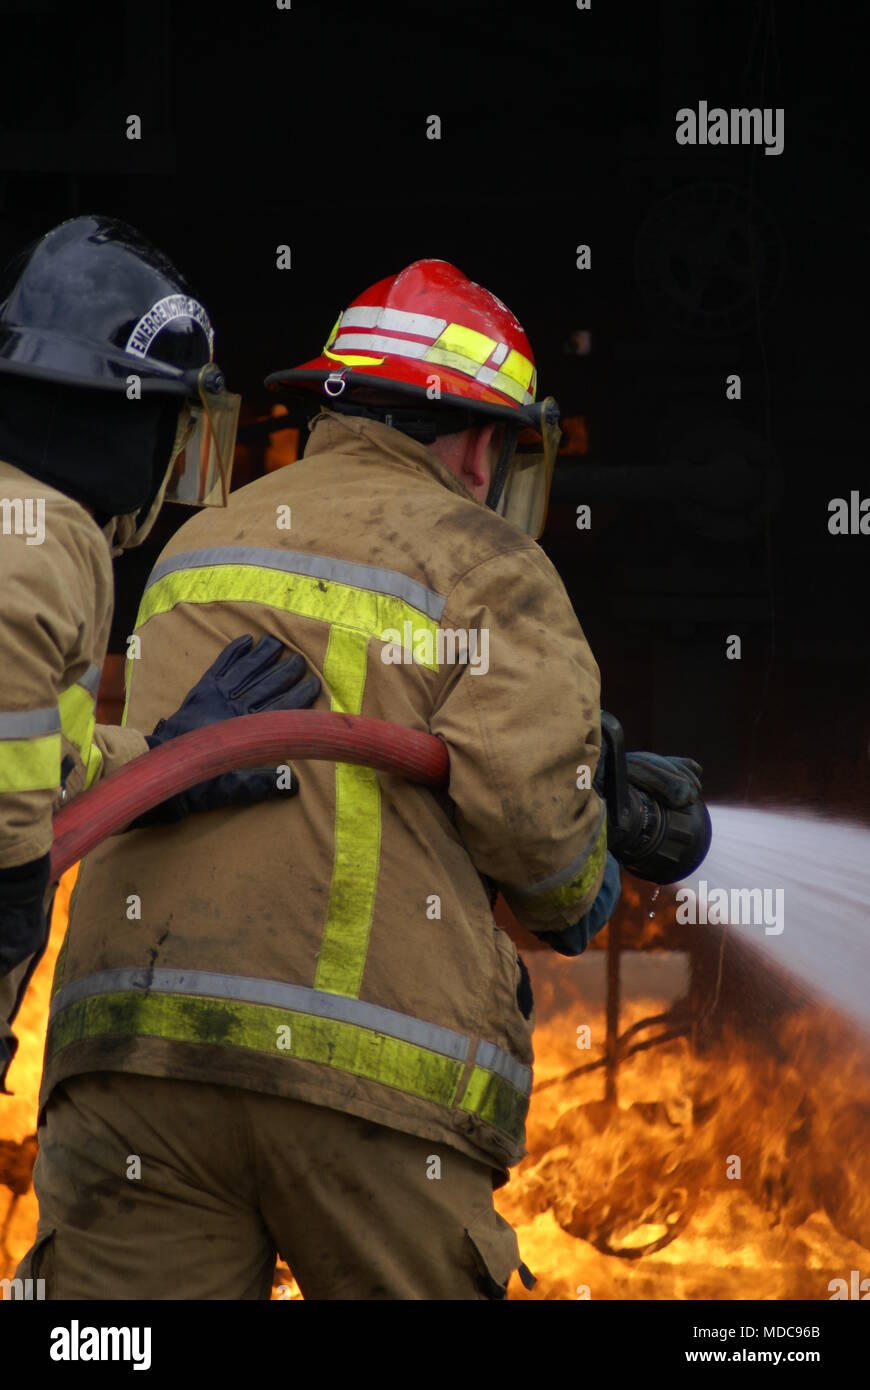 chemical explosion, disaster zone - Stock Image